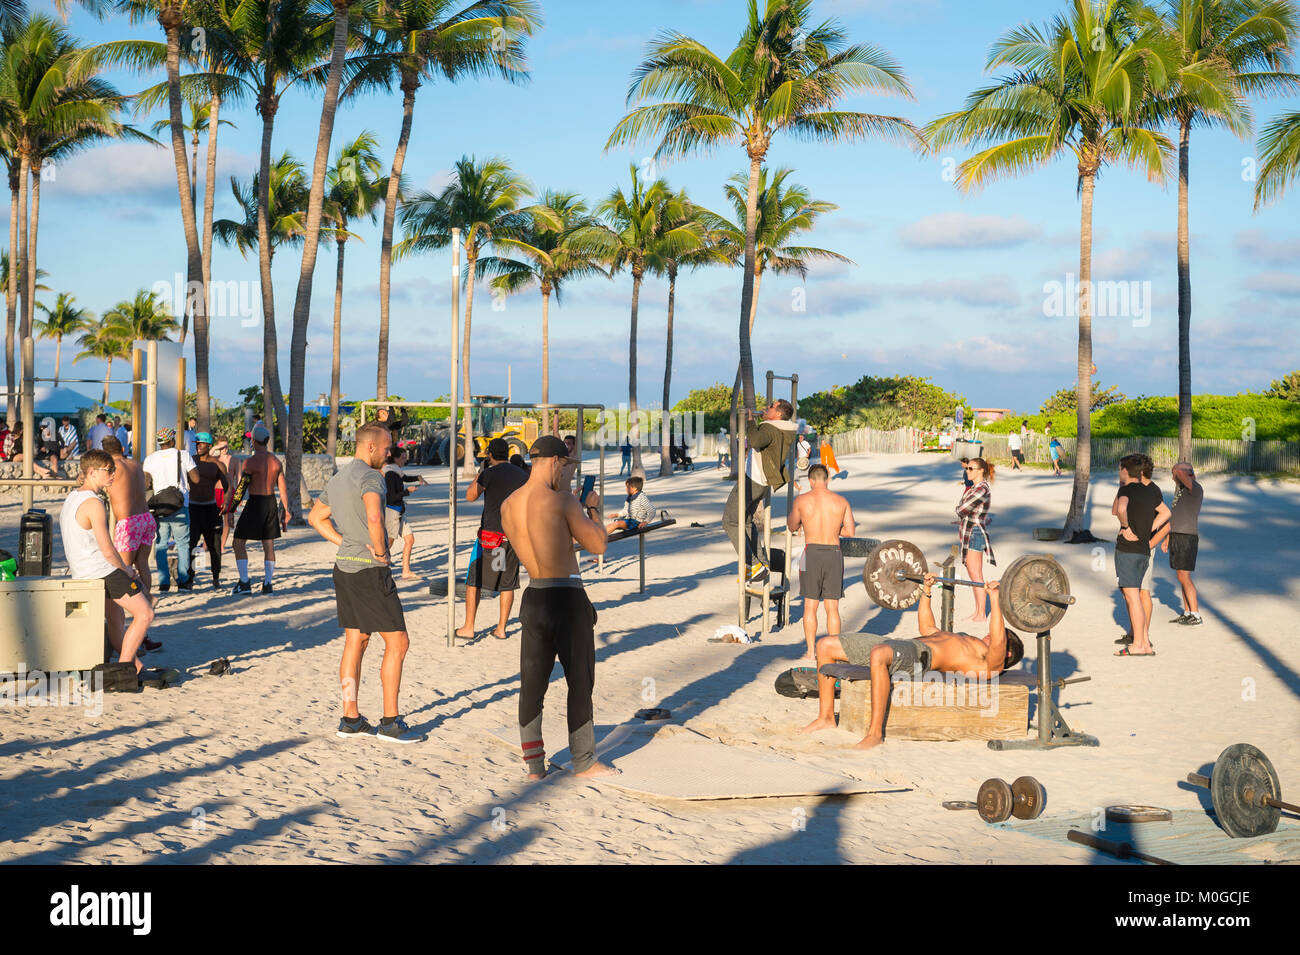 MIAMI - DECEMBER 27, 2017: Muscular young men attract onlookers working out at the outdoor workout station in Lummus - Stock Image